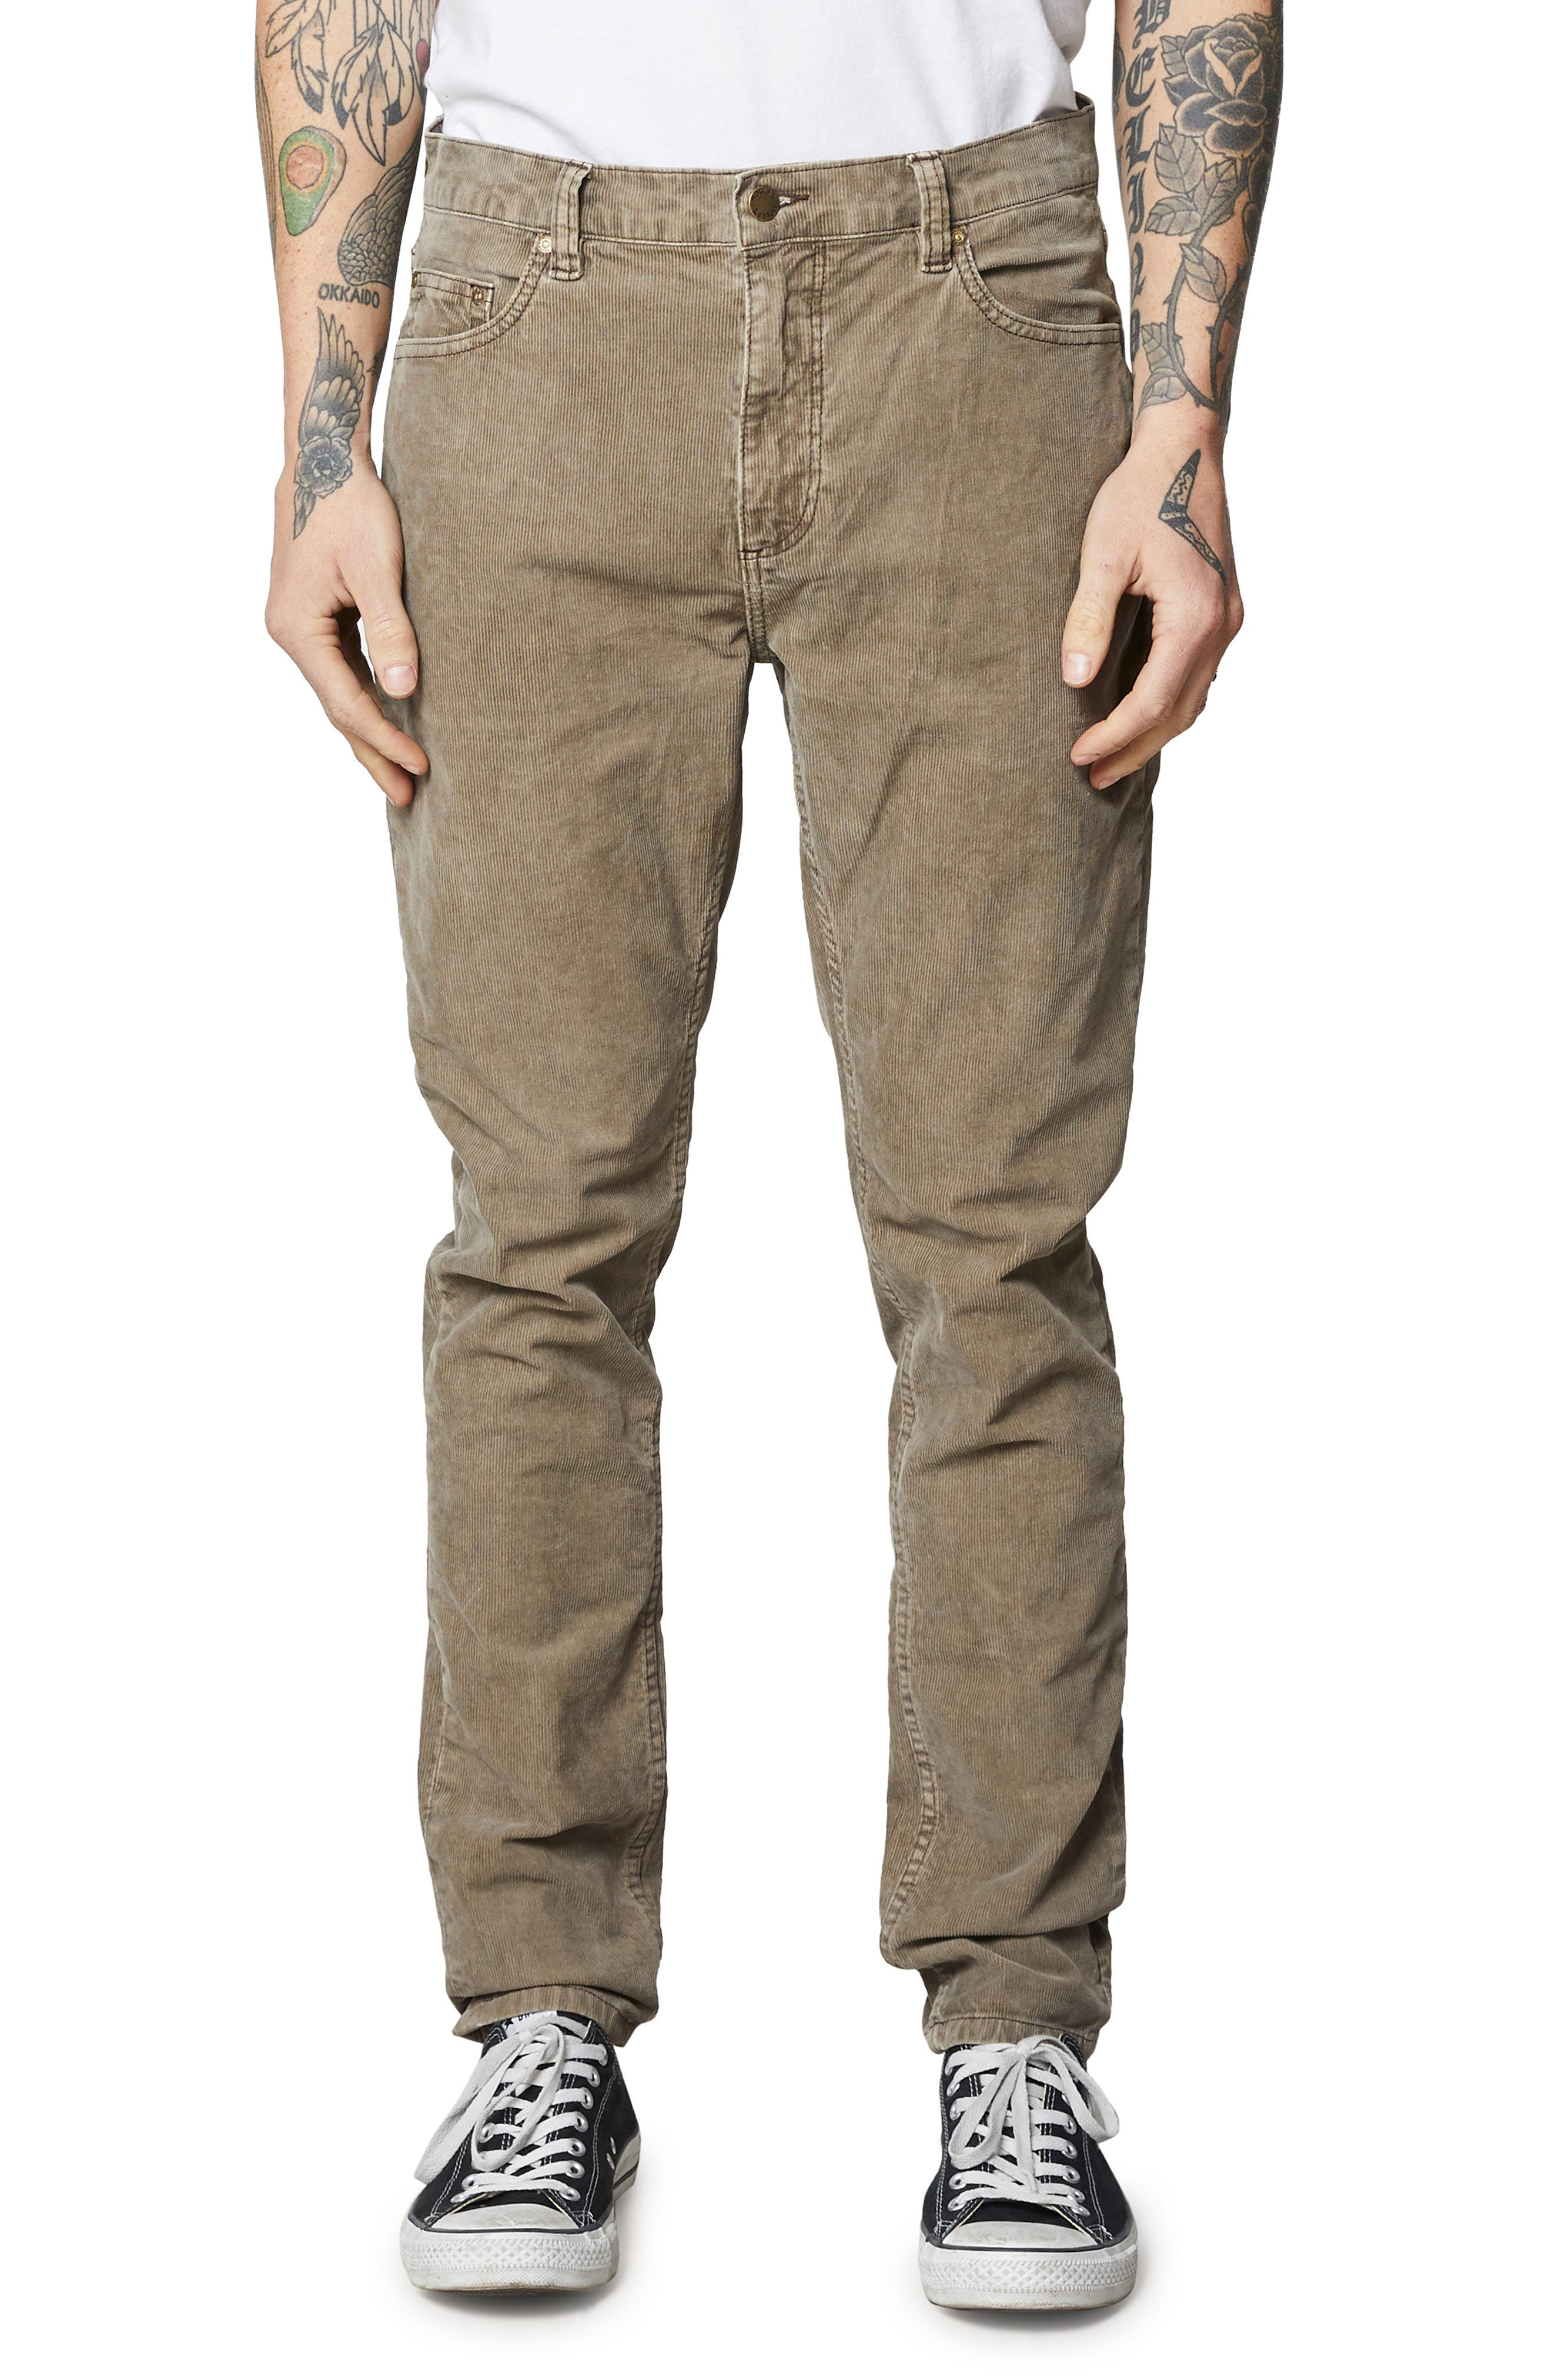 ROLLA'S Tim Slim Fit Jeans in Stone Cord